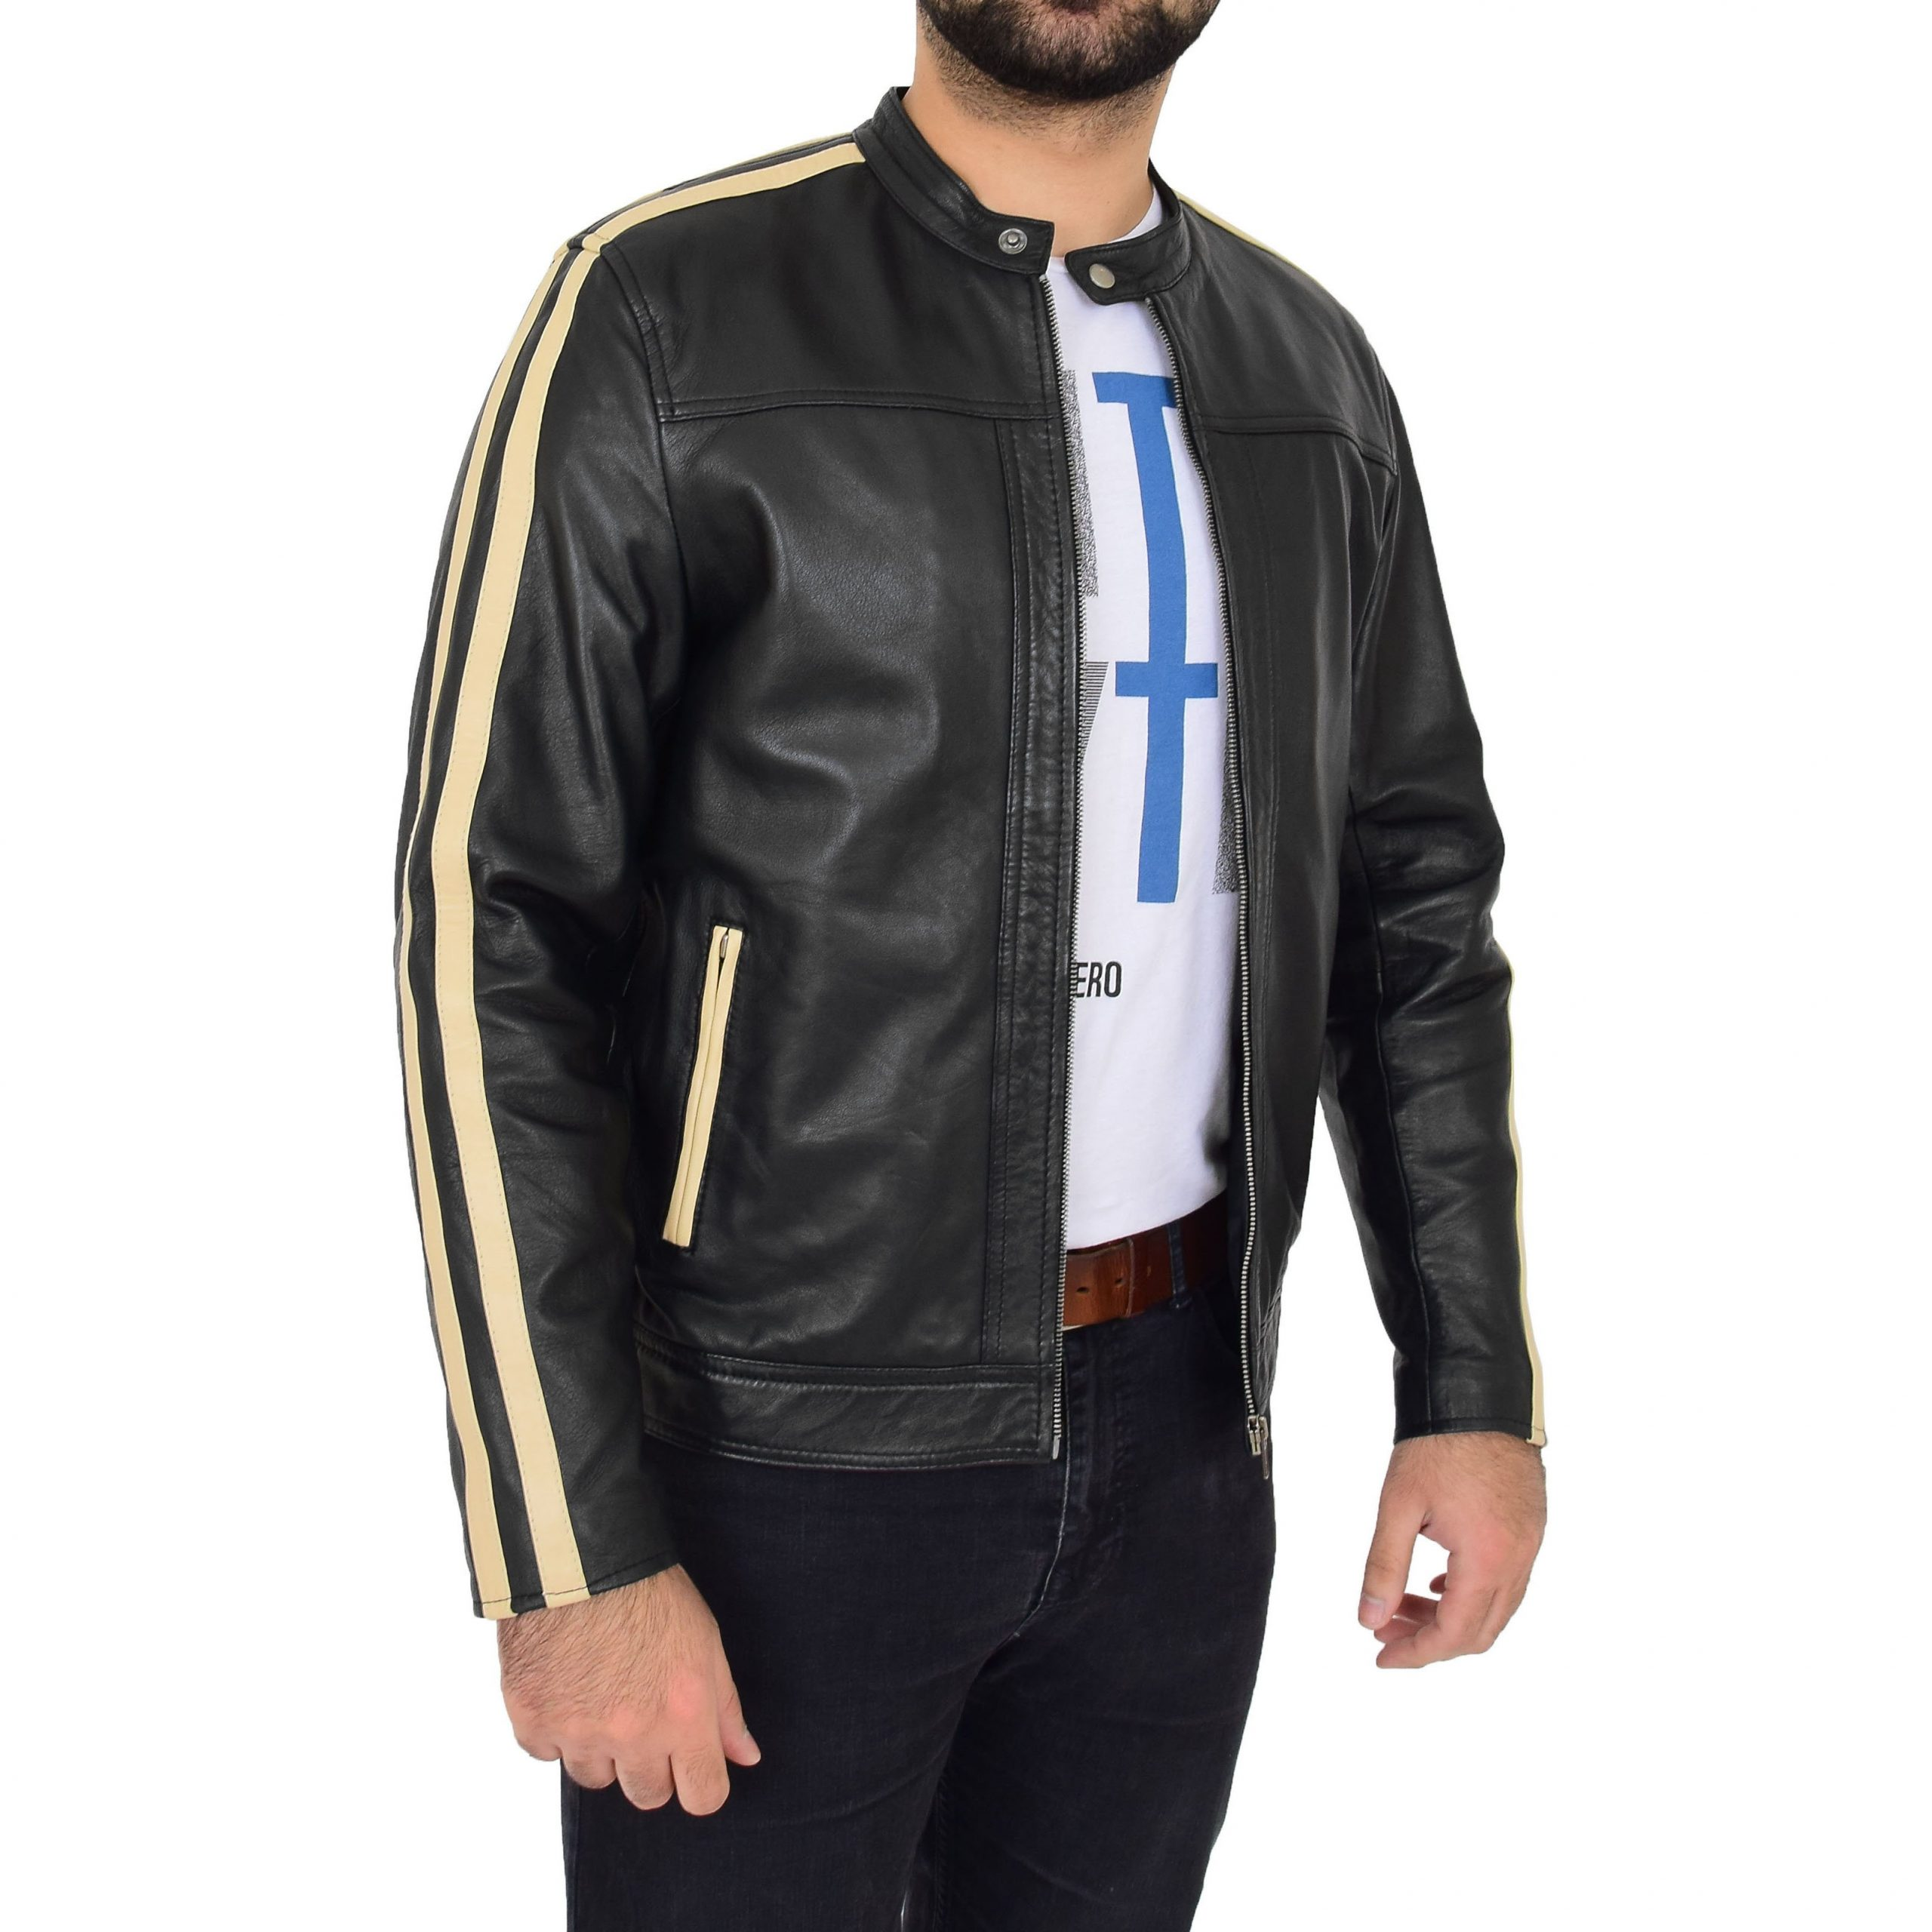 Mens Leather Biker Jacket with Racing Stripes Clyde Black